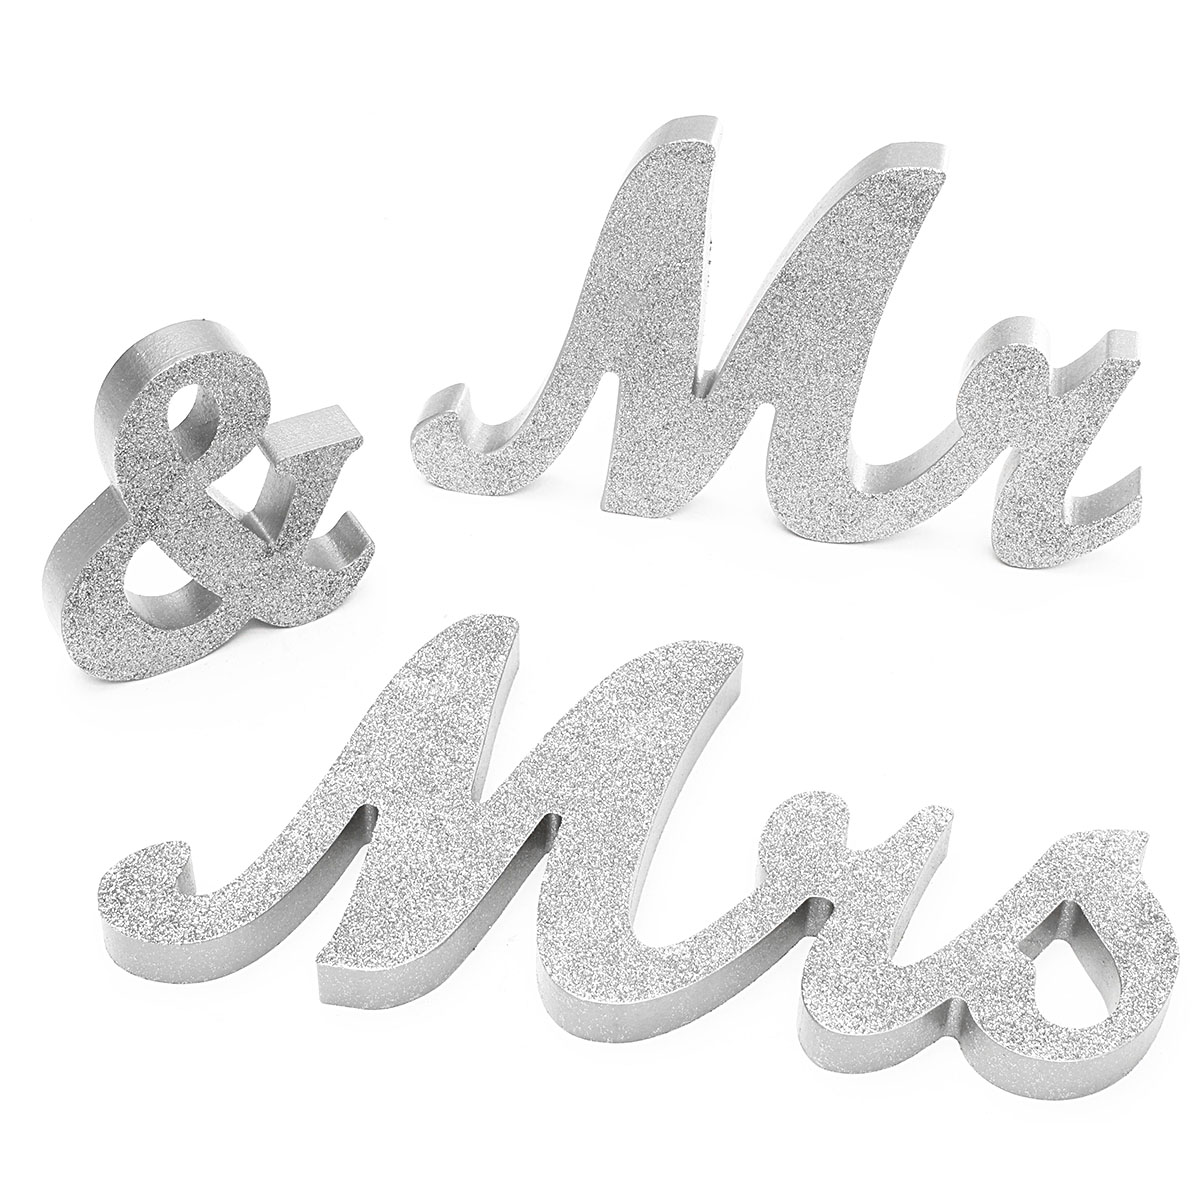 Mr & Mrs Wooden Letters Sign Reception Table Standing Wedding Decoration Gift ,Black Friday Big Sale!